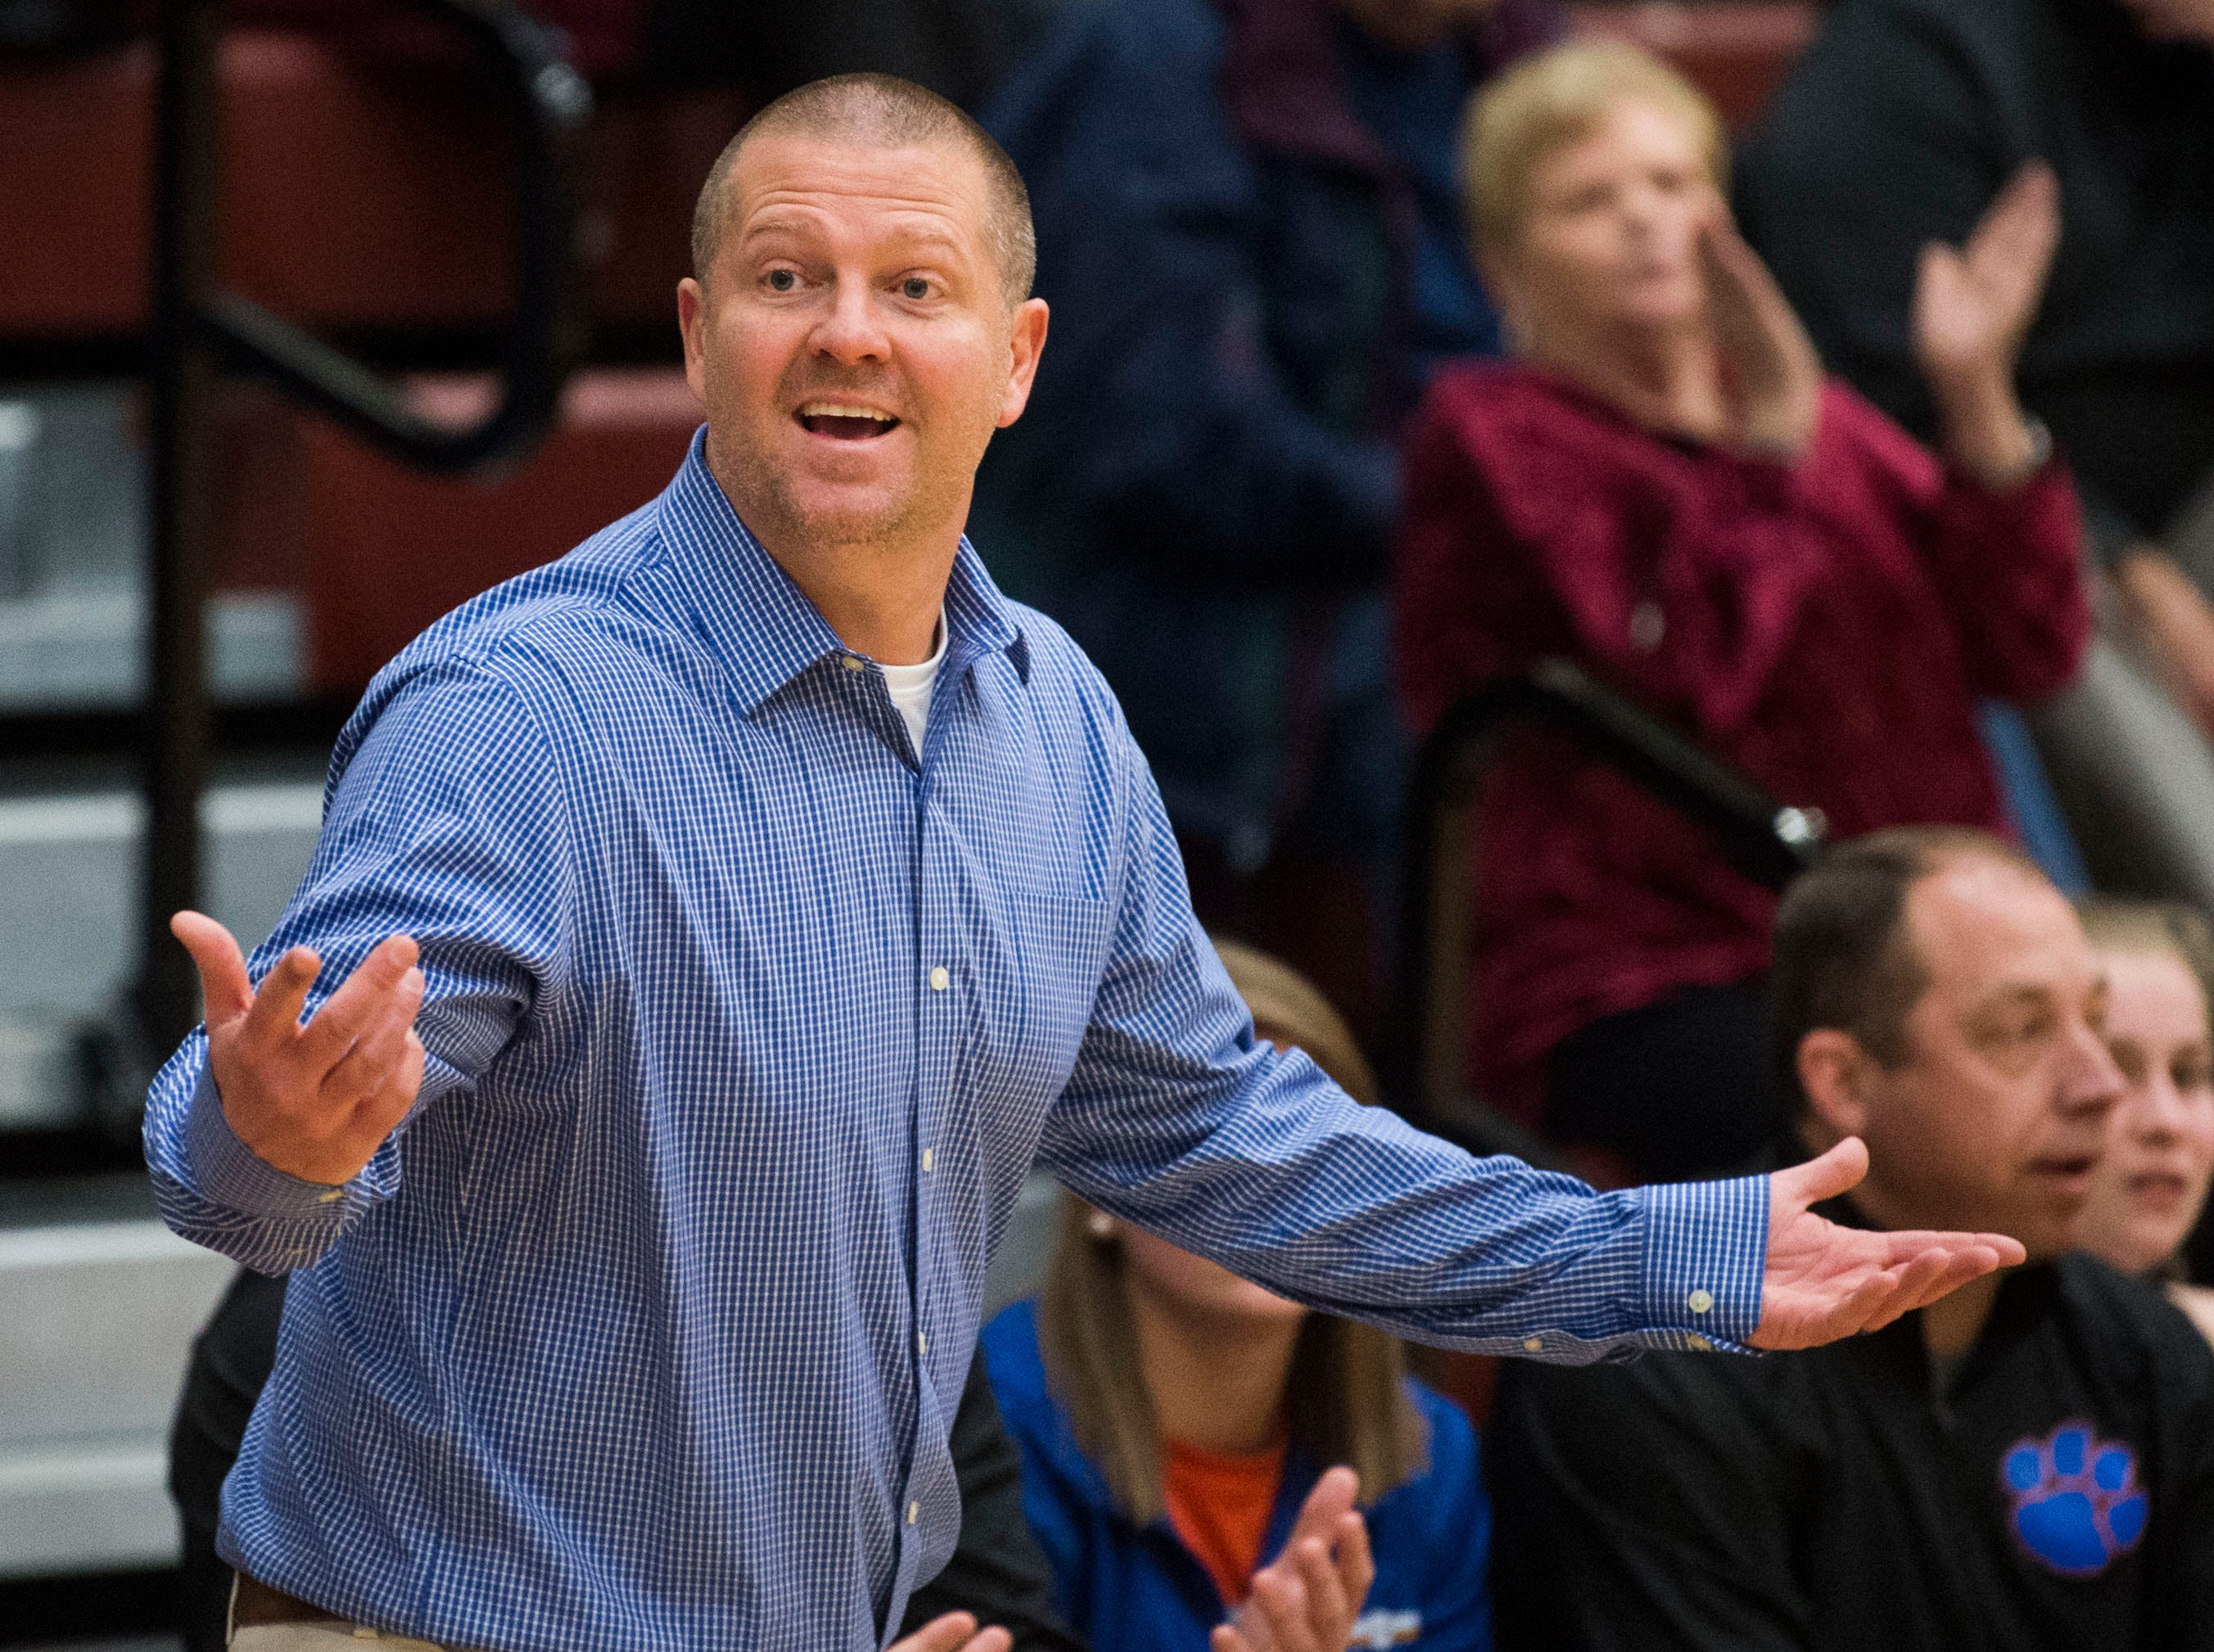 Campbell County's coach yells to the court during a high school basketball game between Oak Ridge and Campbell County at Oak Ridge Friday, Feb. 1, 2019.